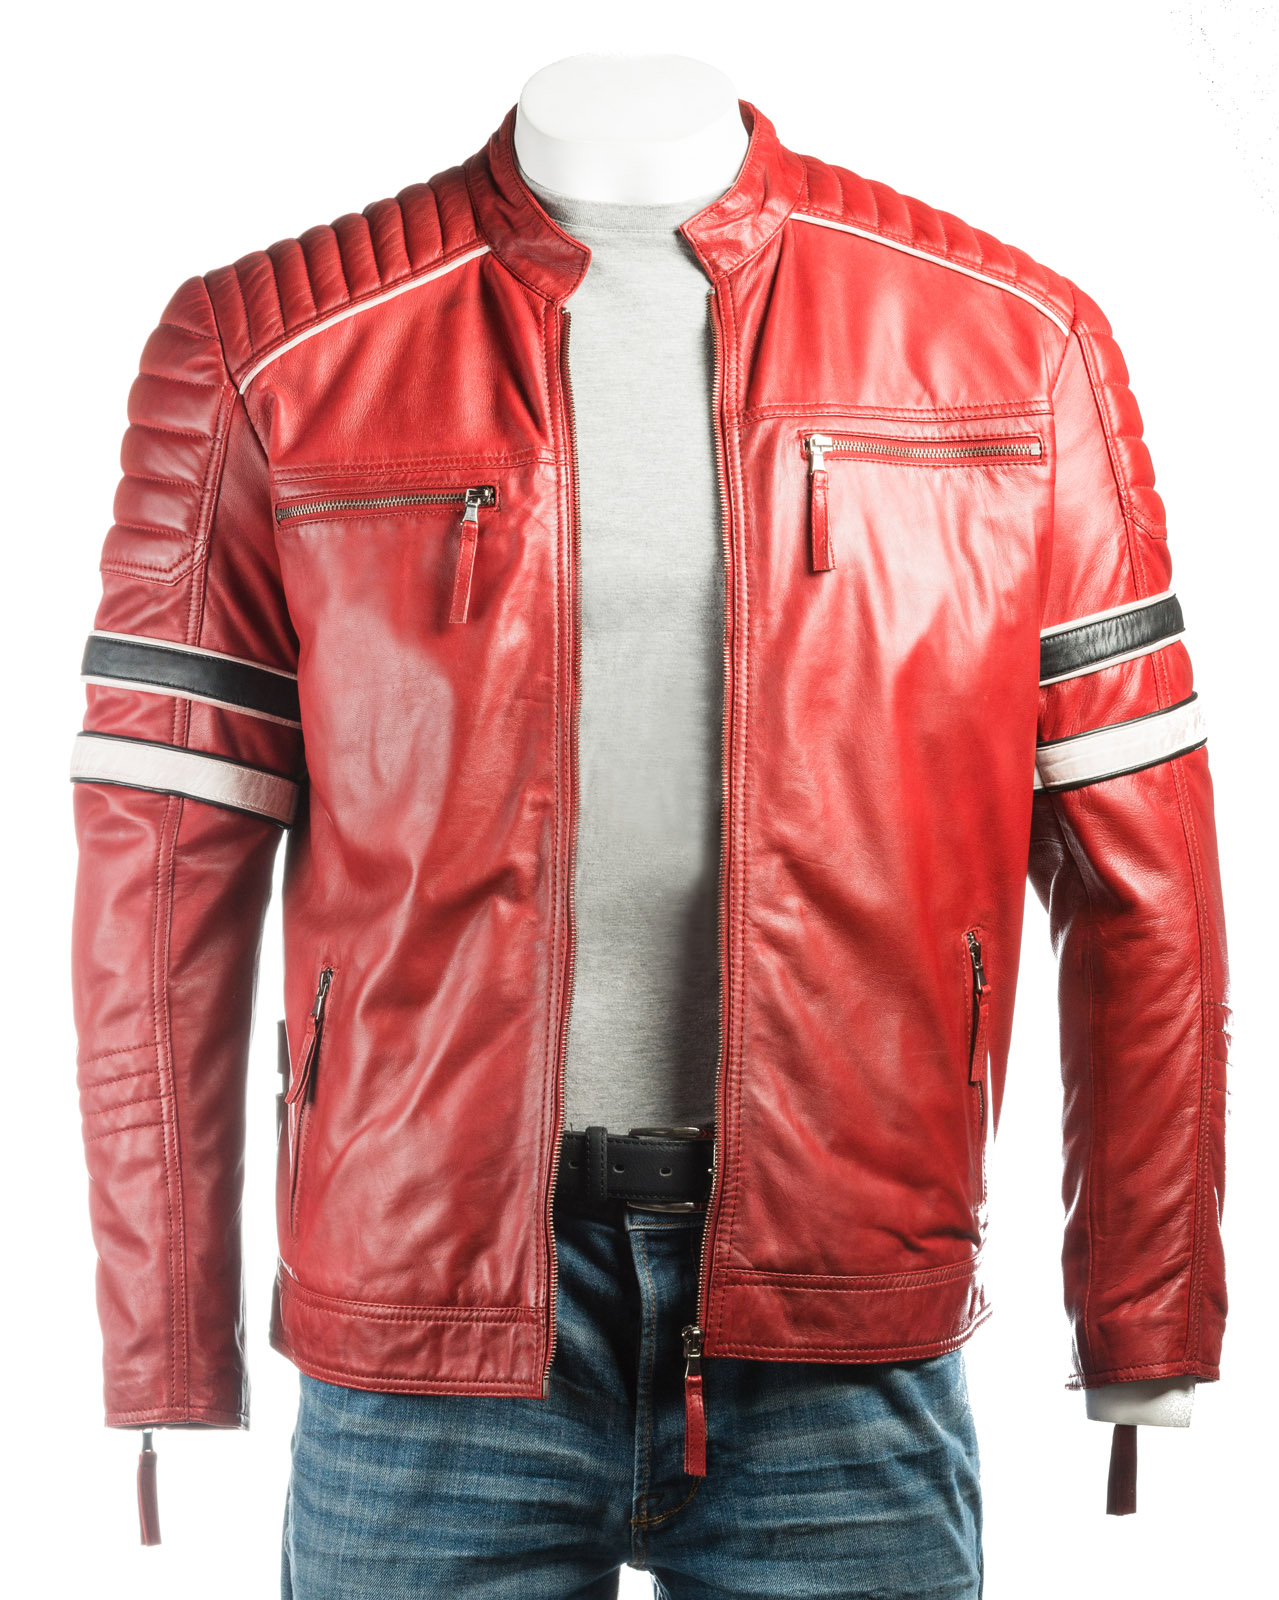 Men S Red Racing Biker Style Leather Jacket Red Color